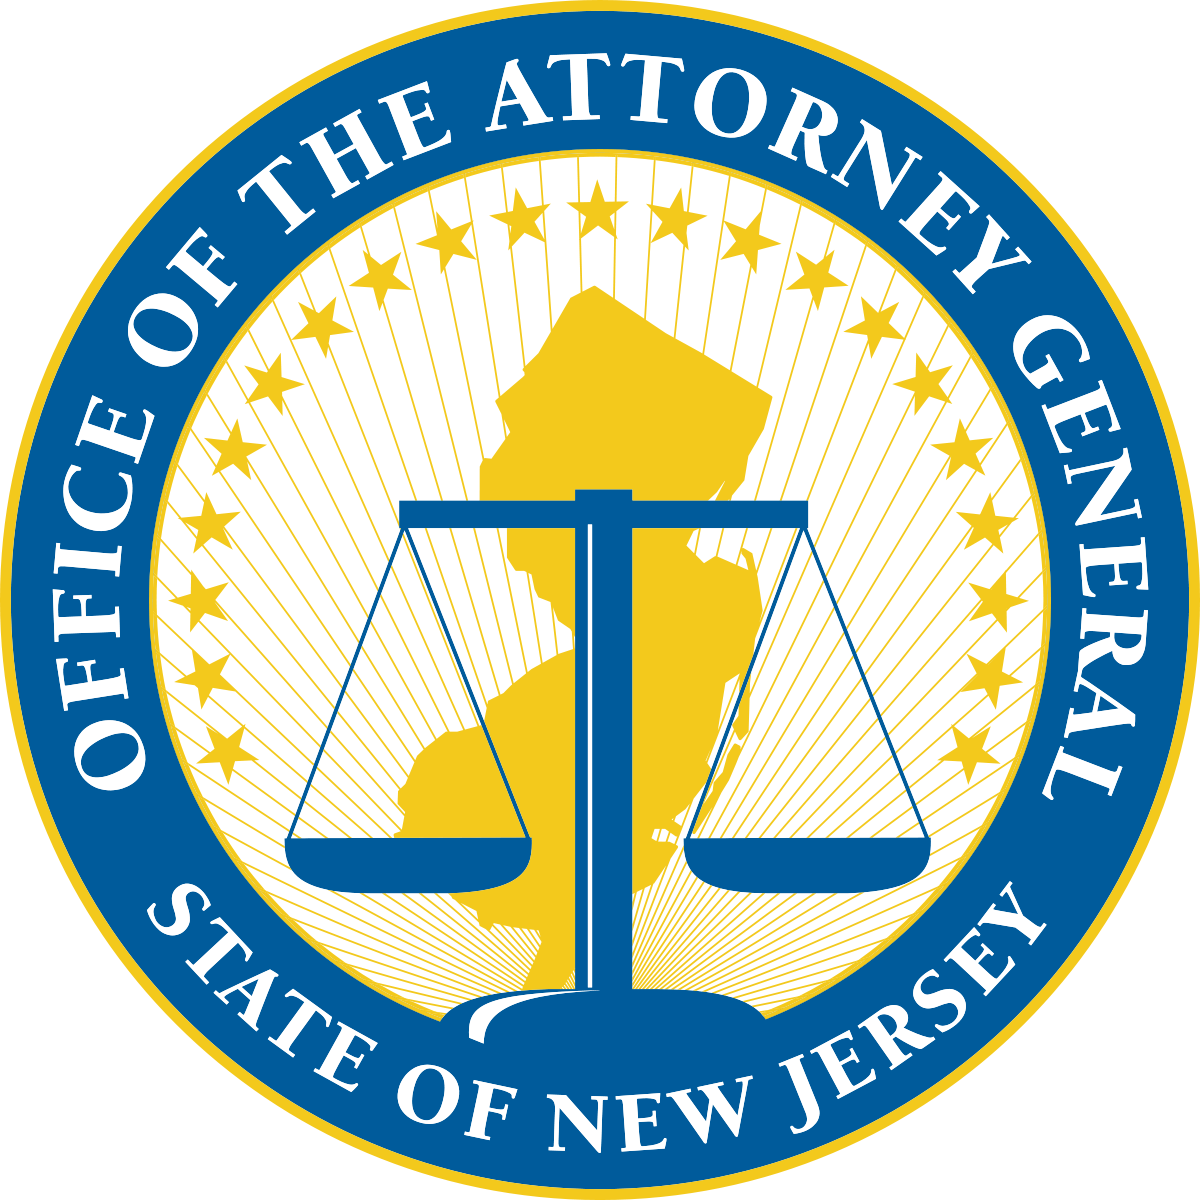 45cd20d0bf416aab7d7f_Seal_of_the_Attorney_General_of_New_Jersey.jpg